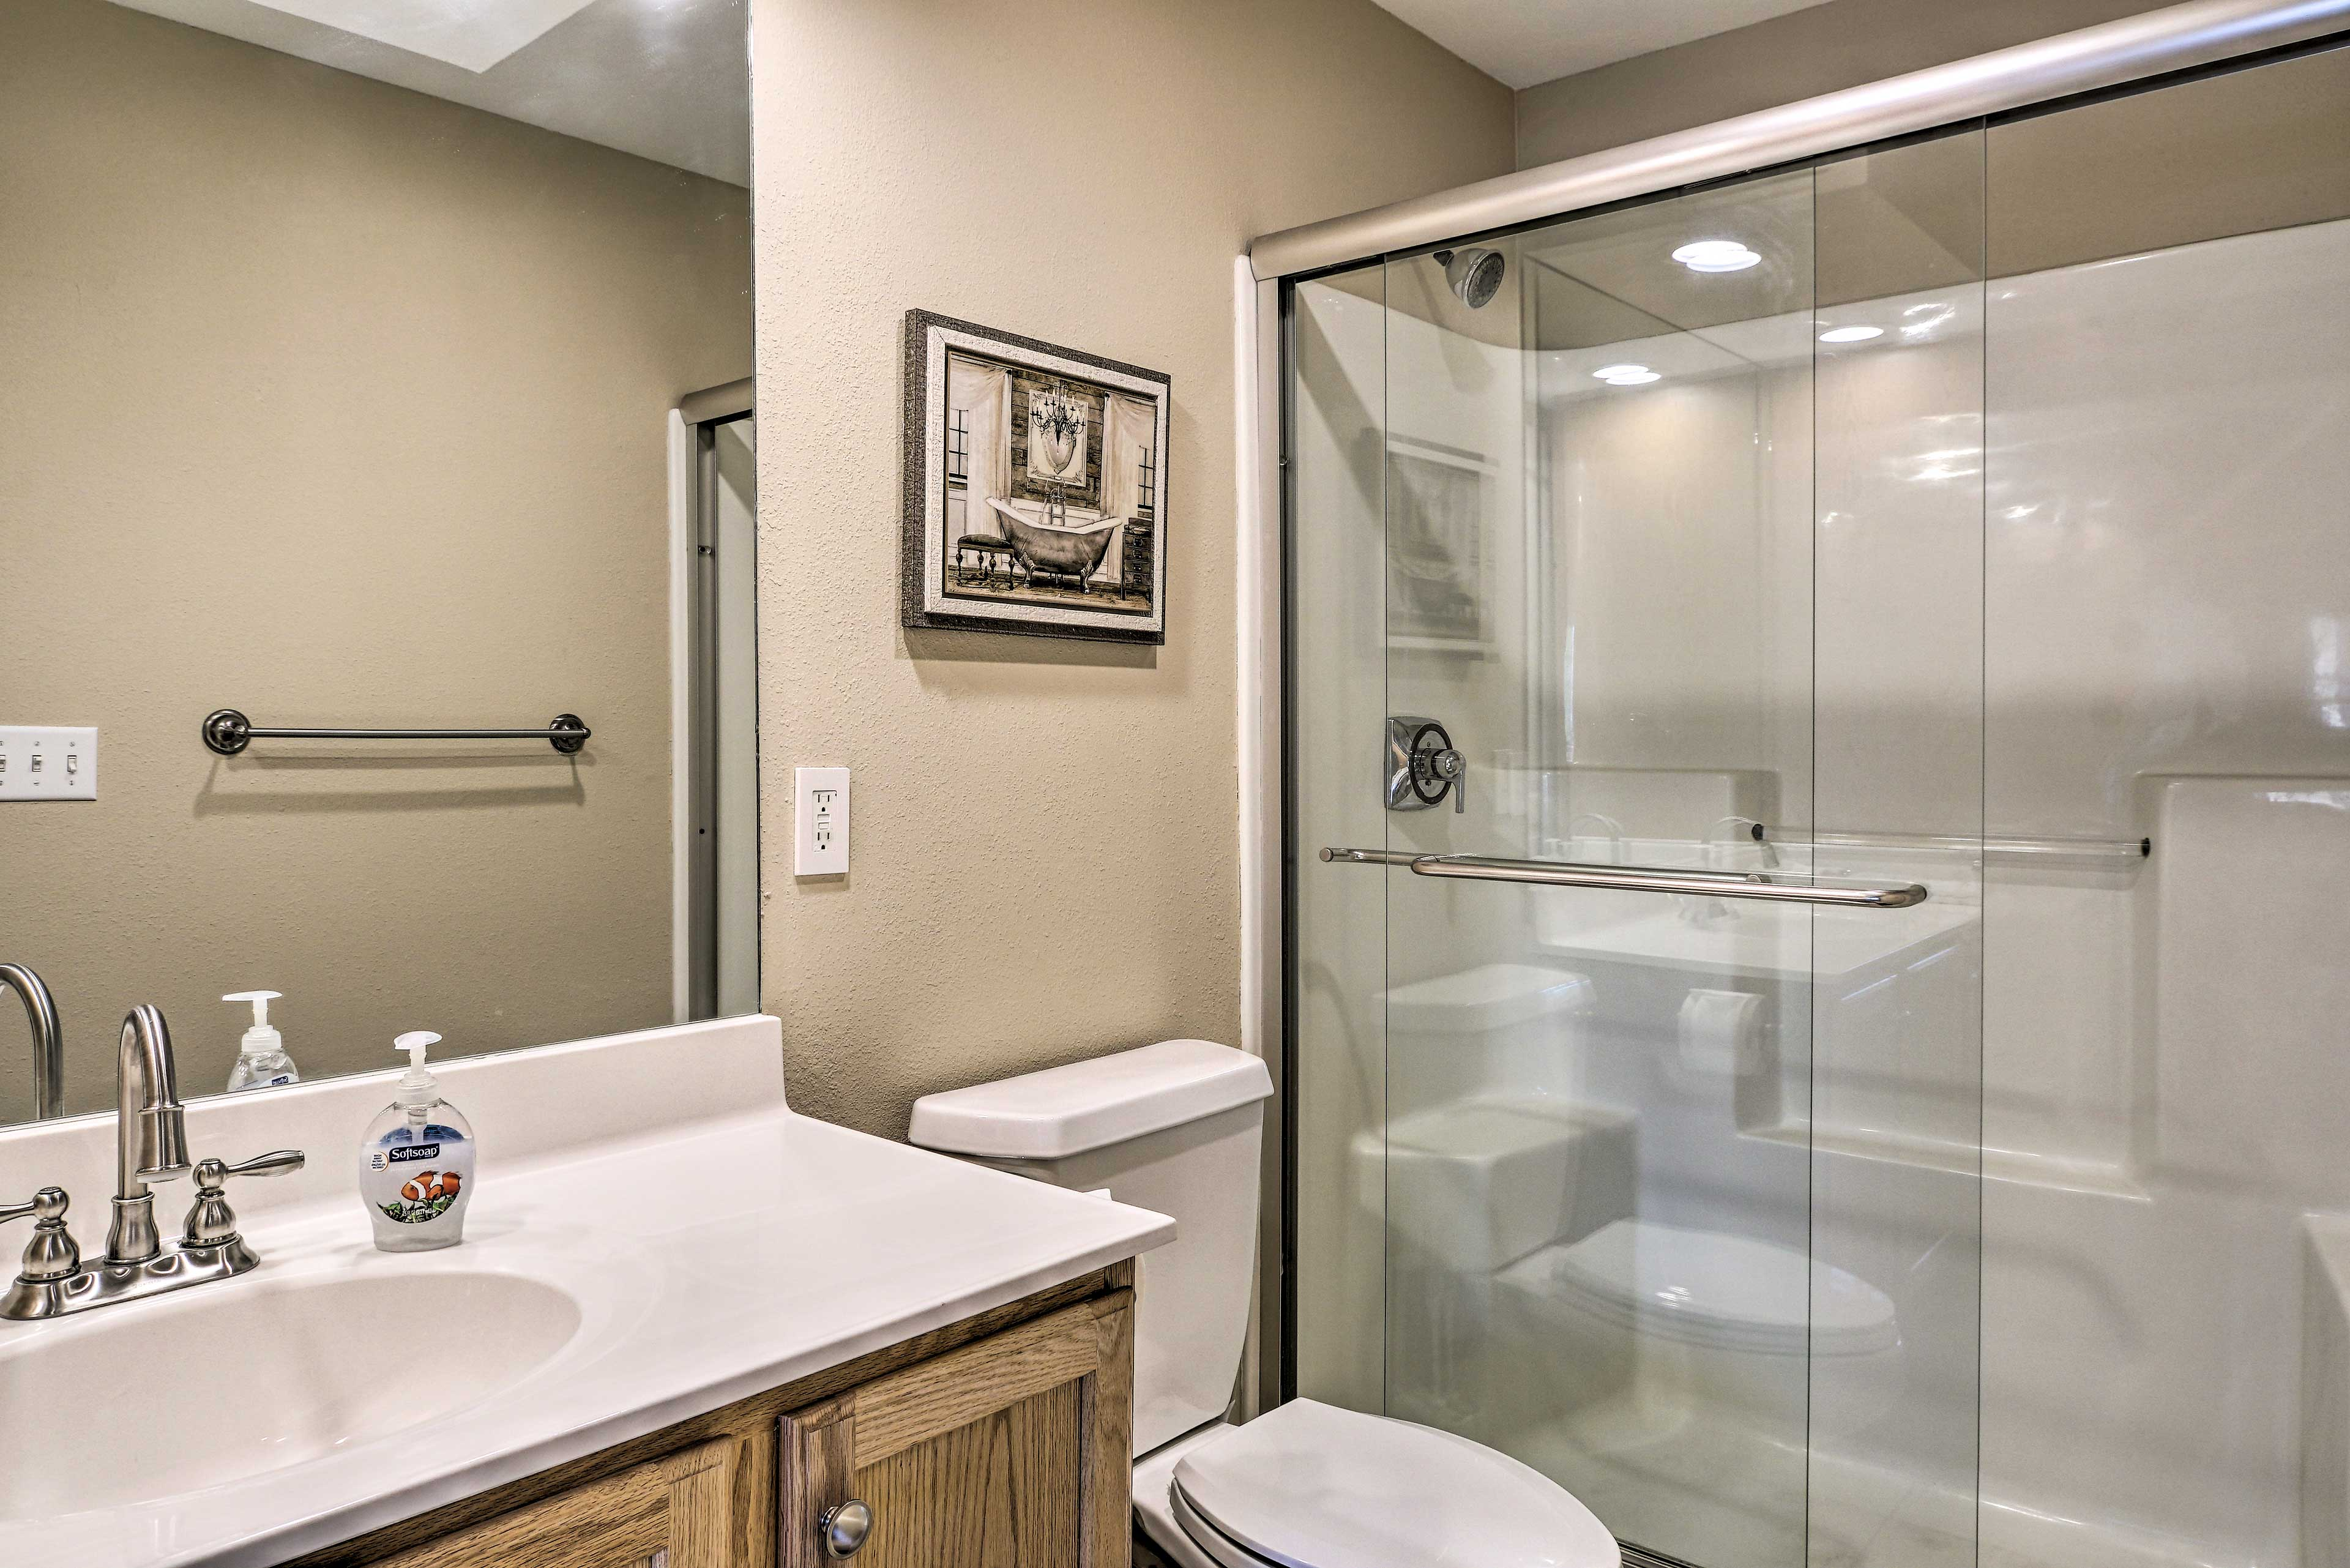 Rinse off the lake water in this pristine shower!